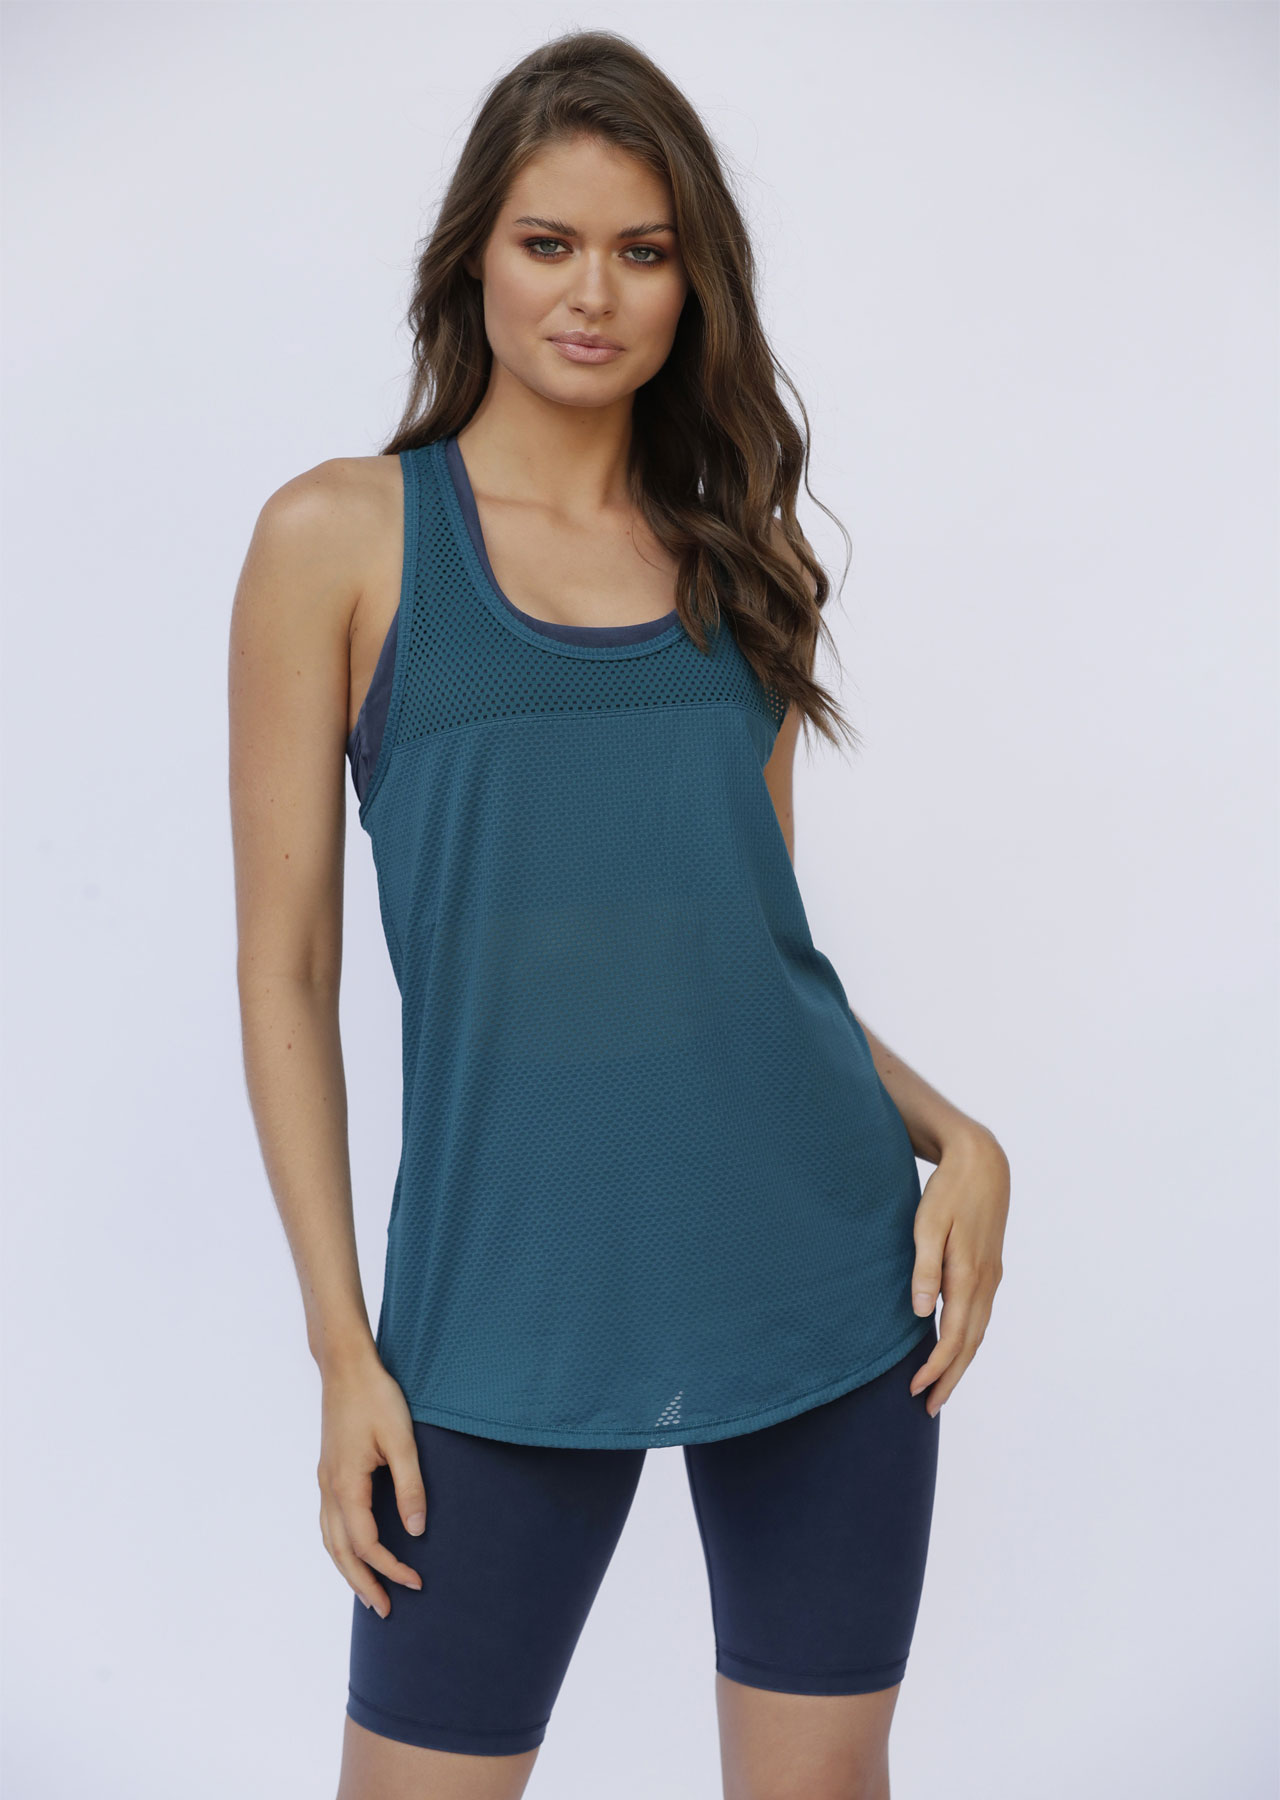 swift excel tank green 022027 evte 1 - Sports & Fitness